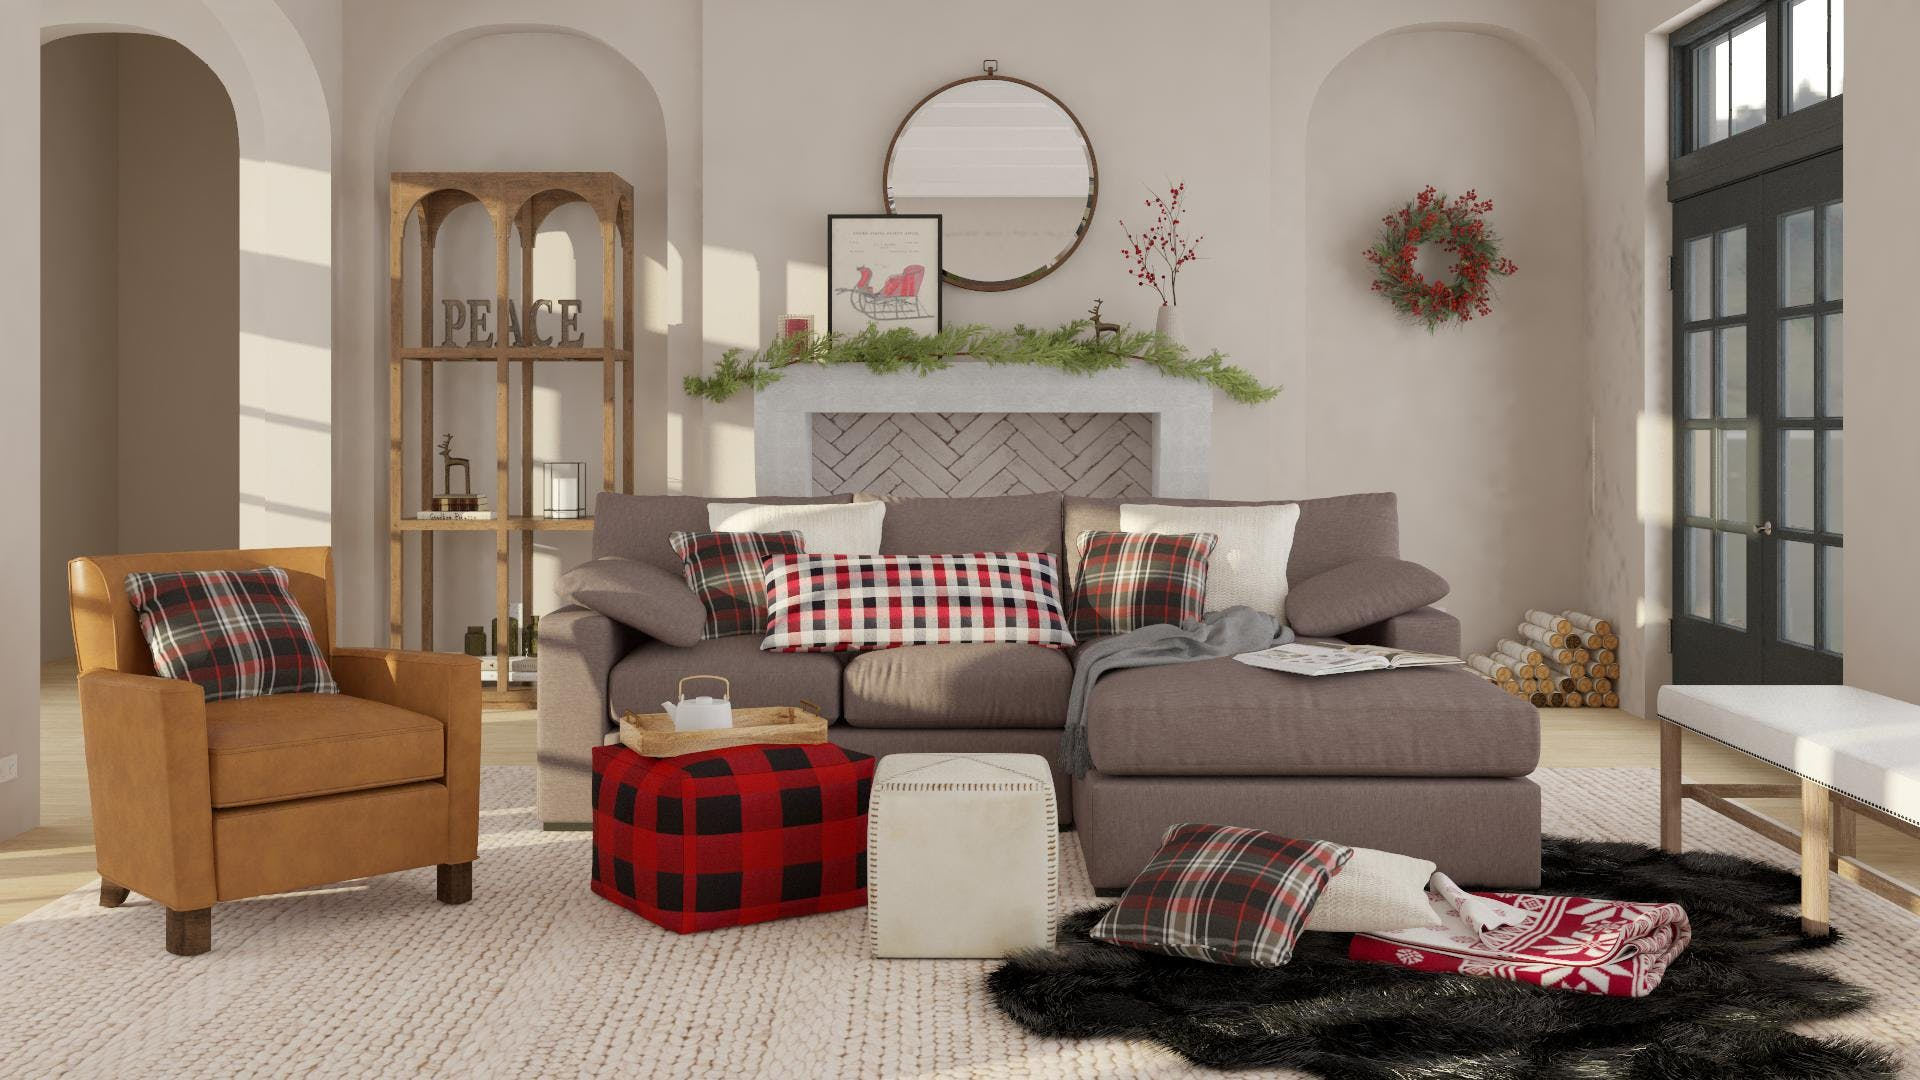 A Delightful Holiday Traditional Living Room